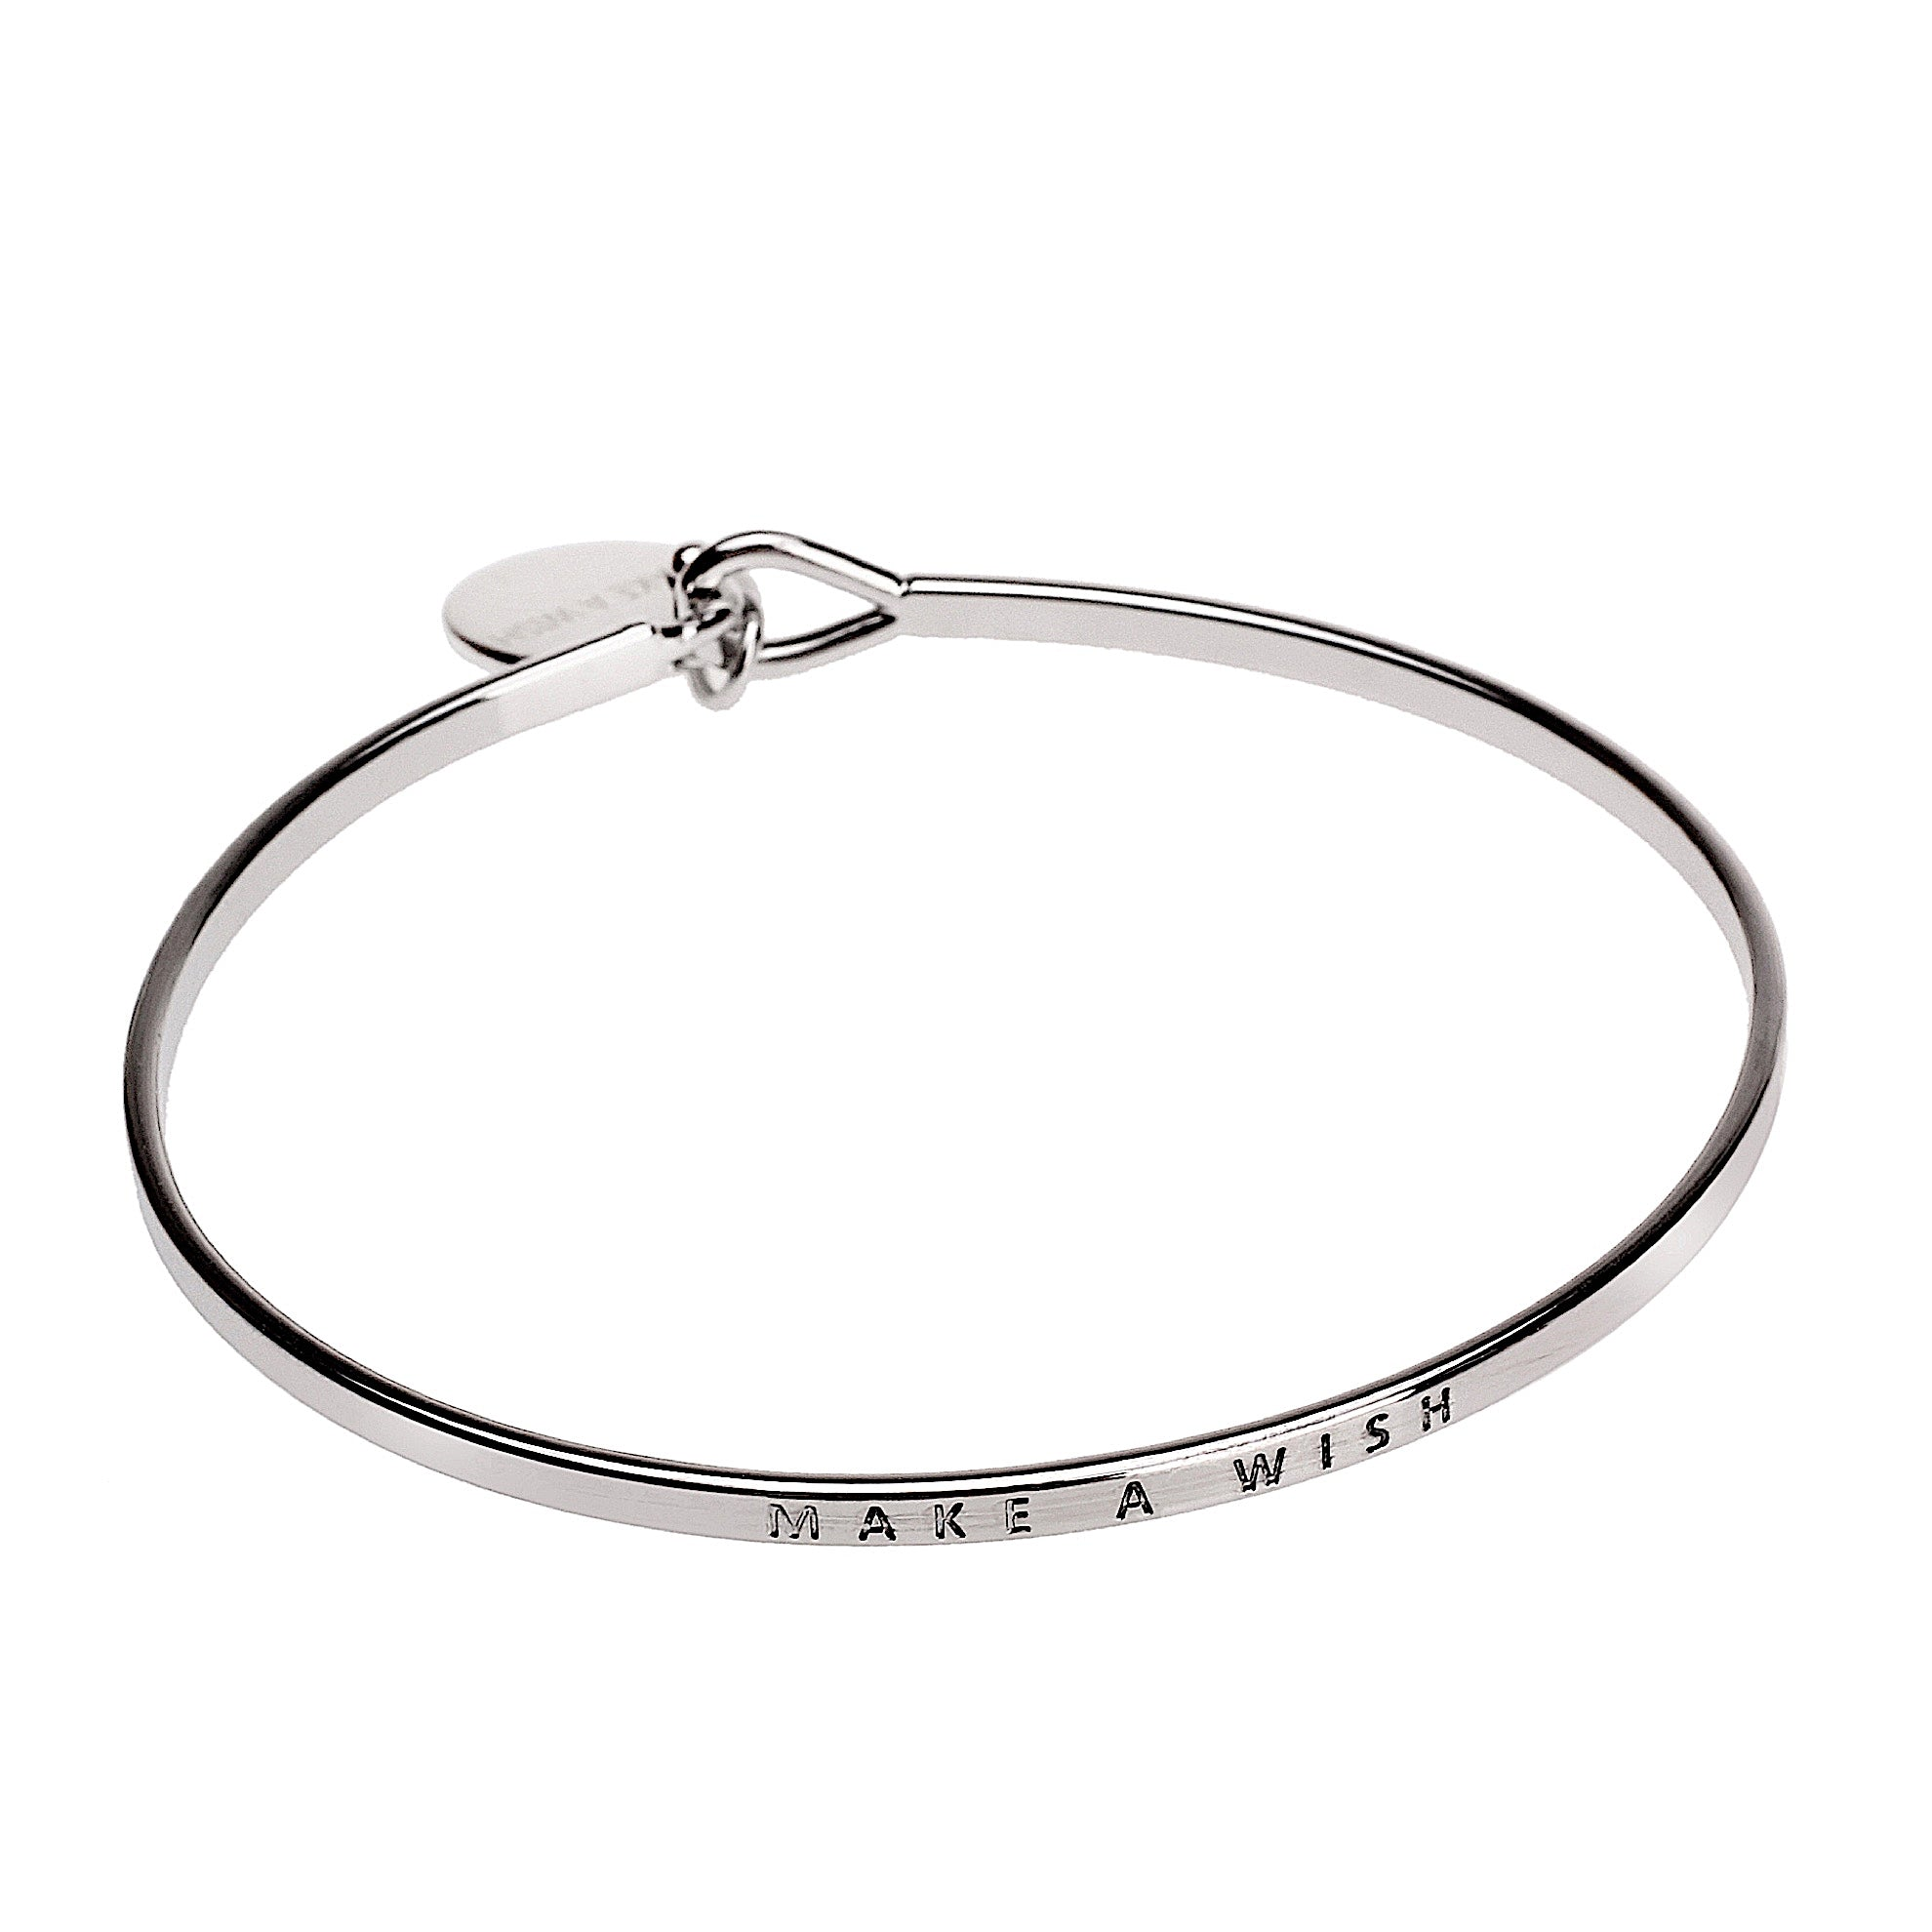 Make a Wish Sentiment Disc Bangle - Silver | More Than Just at Gift | Narborough Hall